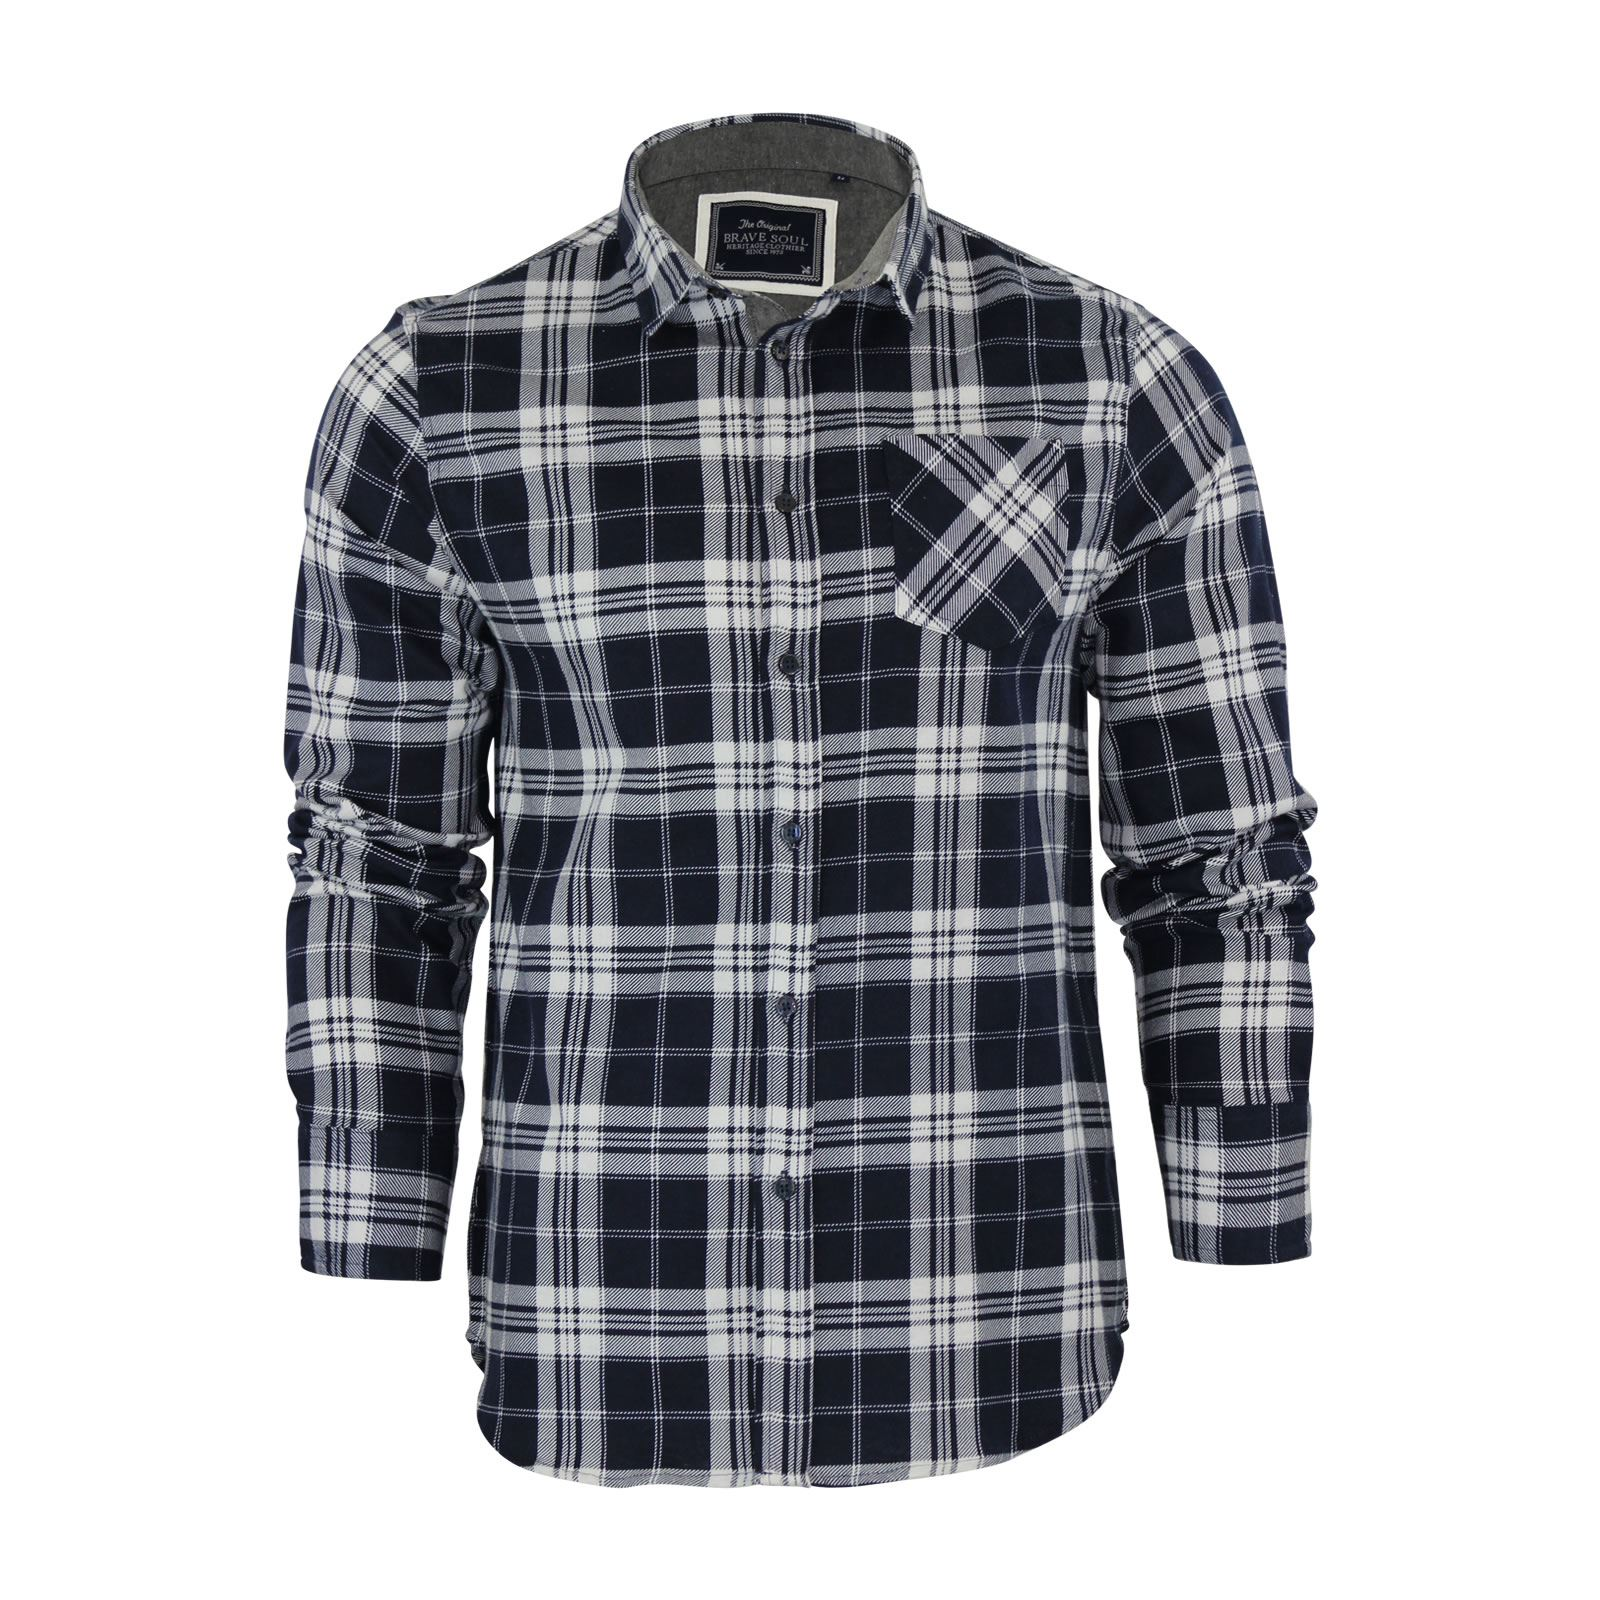 Brave-Soul-Mens-Check-Shirt-Flannel-Brushed-Cotton-Long-Sleeve-Casual-Top thumbnail 89